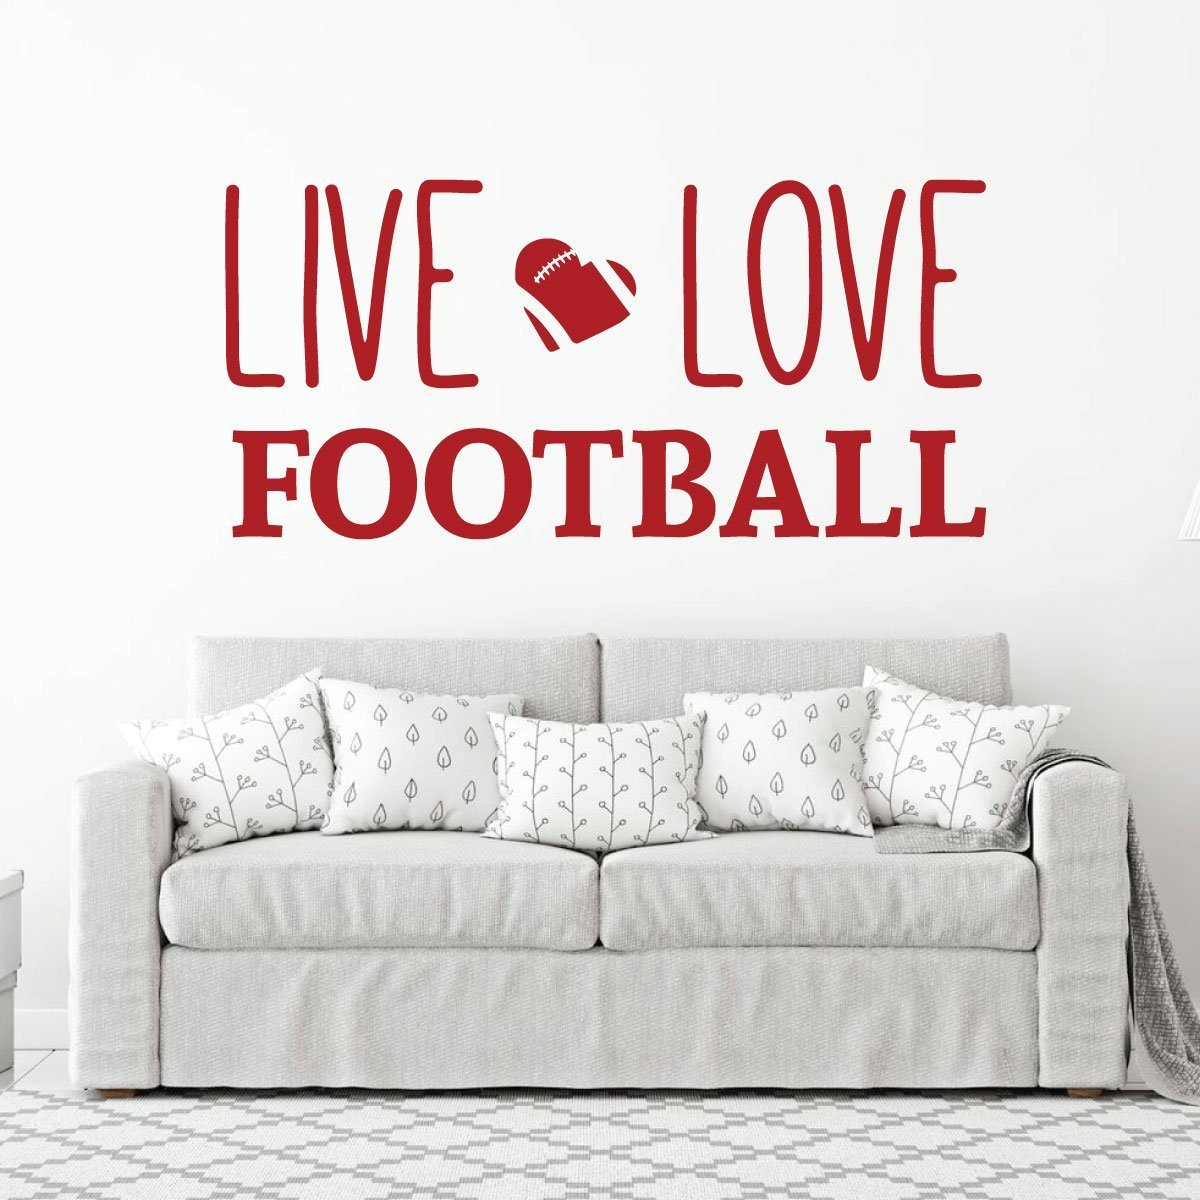 Live Love Football Wall Decal - Vinyl Art Sticker for Bedroom, Home Decor, Playroom or Game Room Decoration by CustomVinylDecor (Image #3)